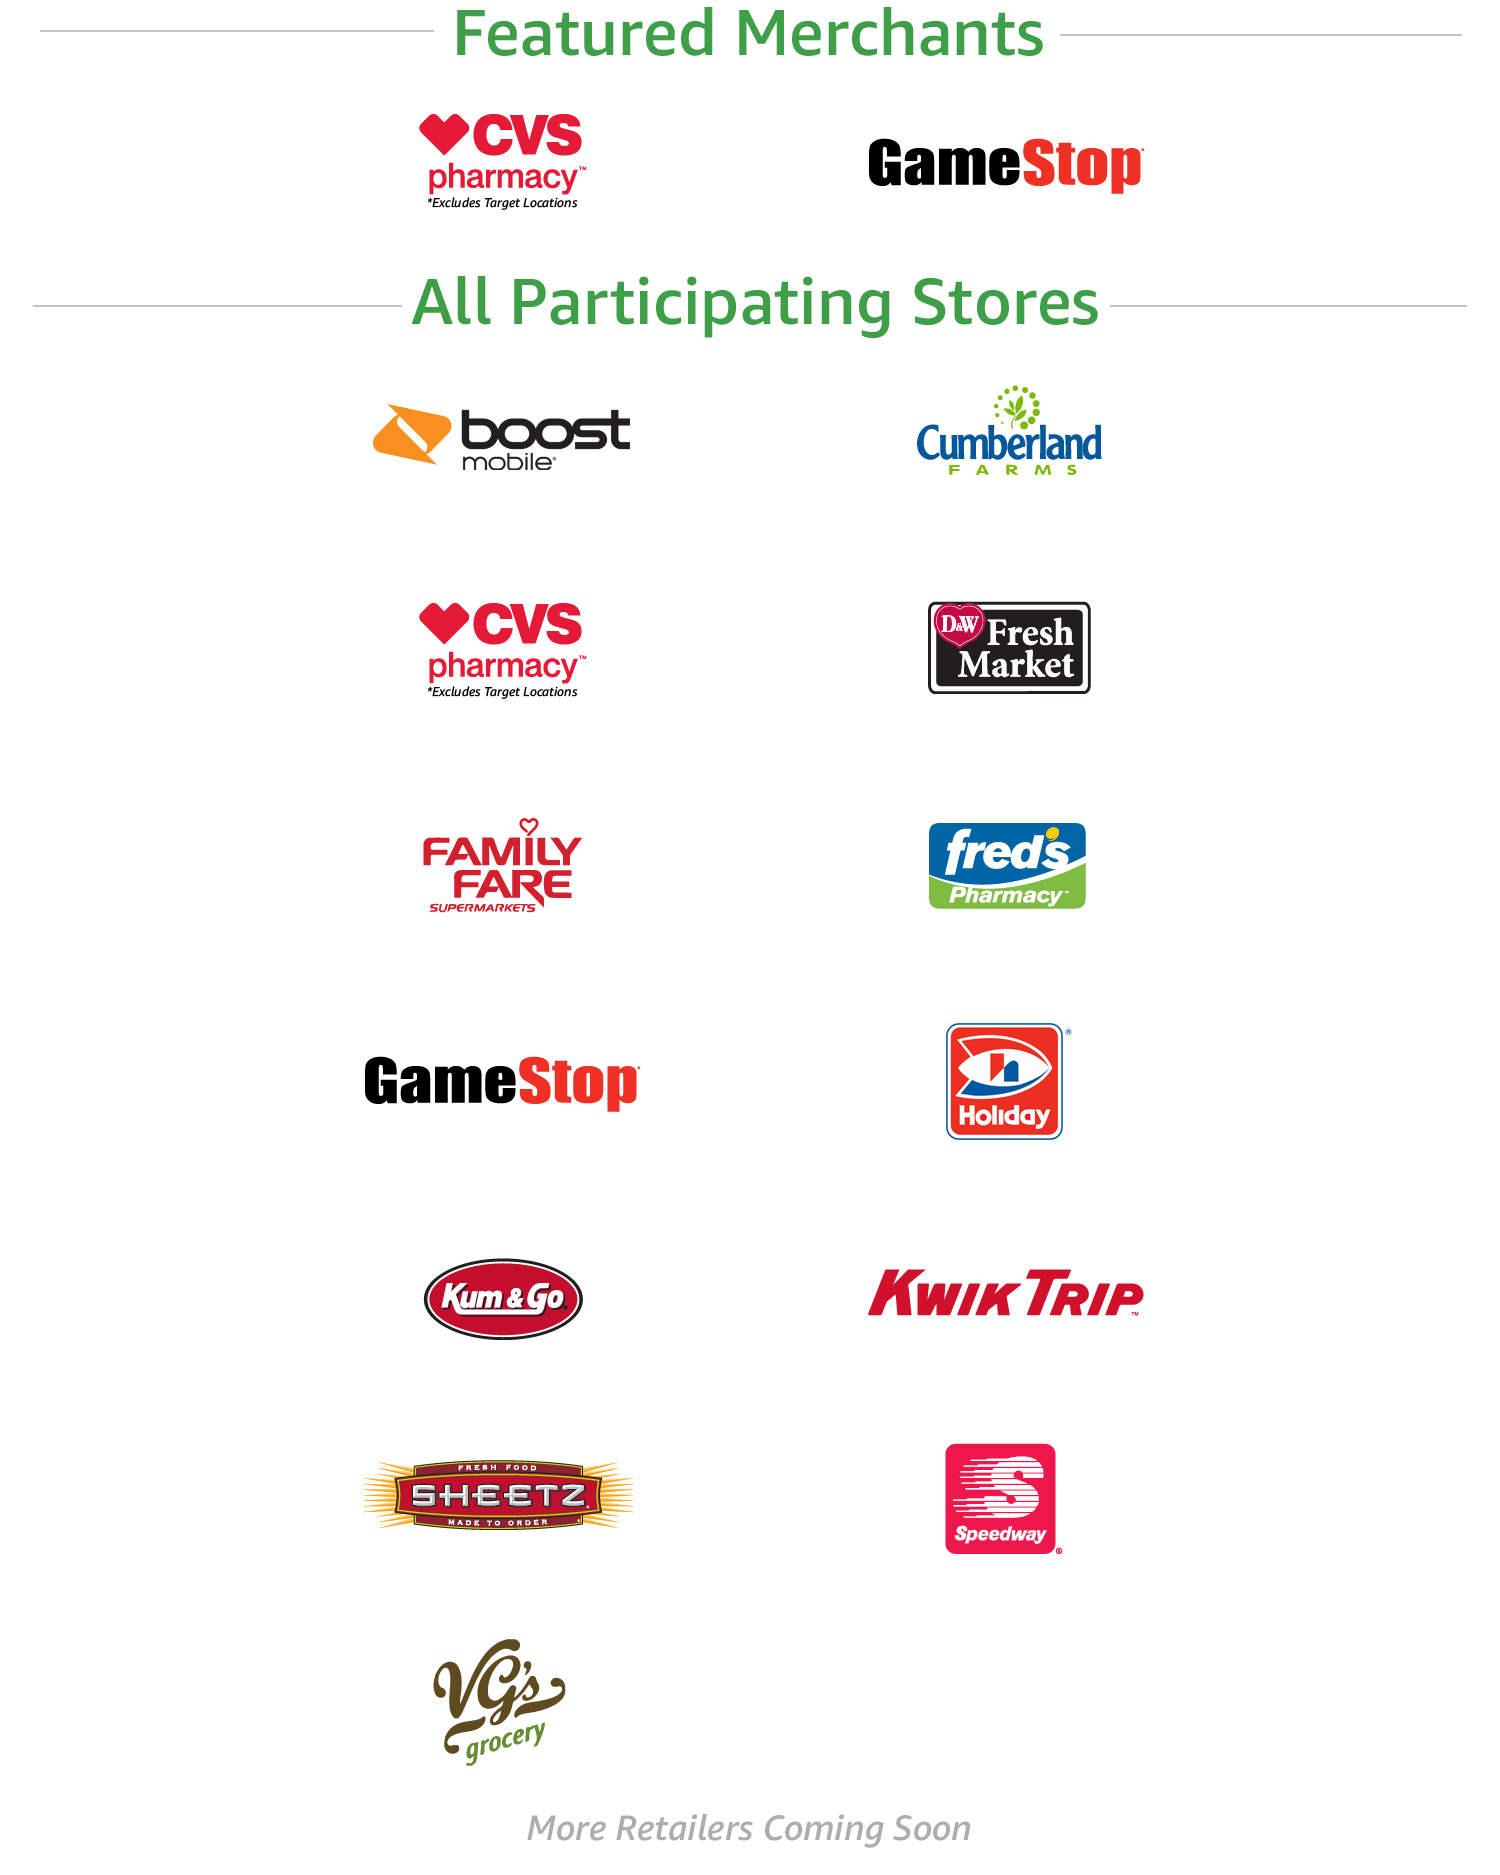 Amazon Cash Participating Stores | CVS pharmacy, GameStop, Cumberland Farms, D&W Fresh Market, Family Fare Supermarkets, Fred's Pharmacy, Holiday, Kum & Go, Kwik Trip, Sheetz, Speedway, VG's grocery | More retailers coming soon